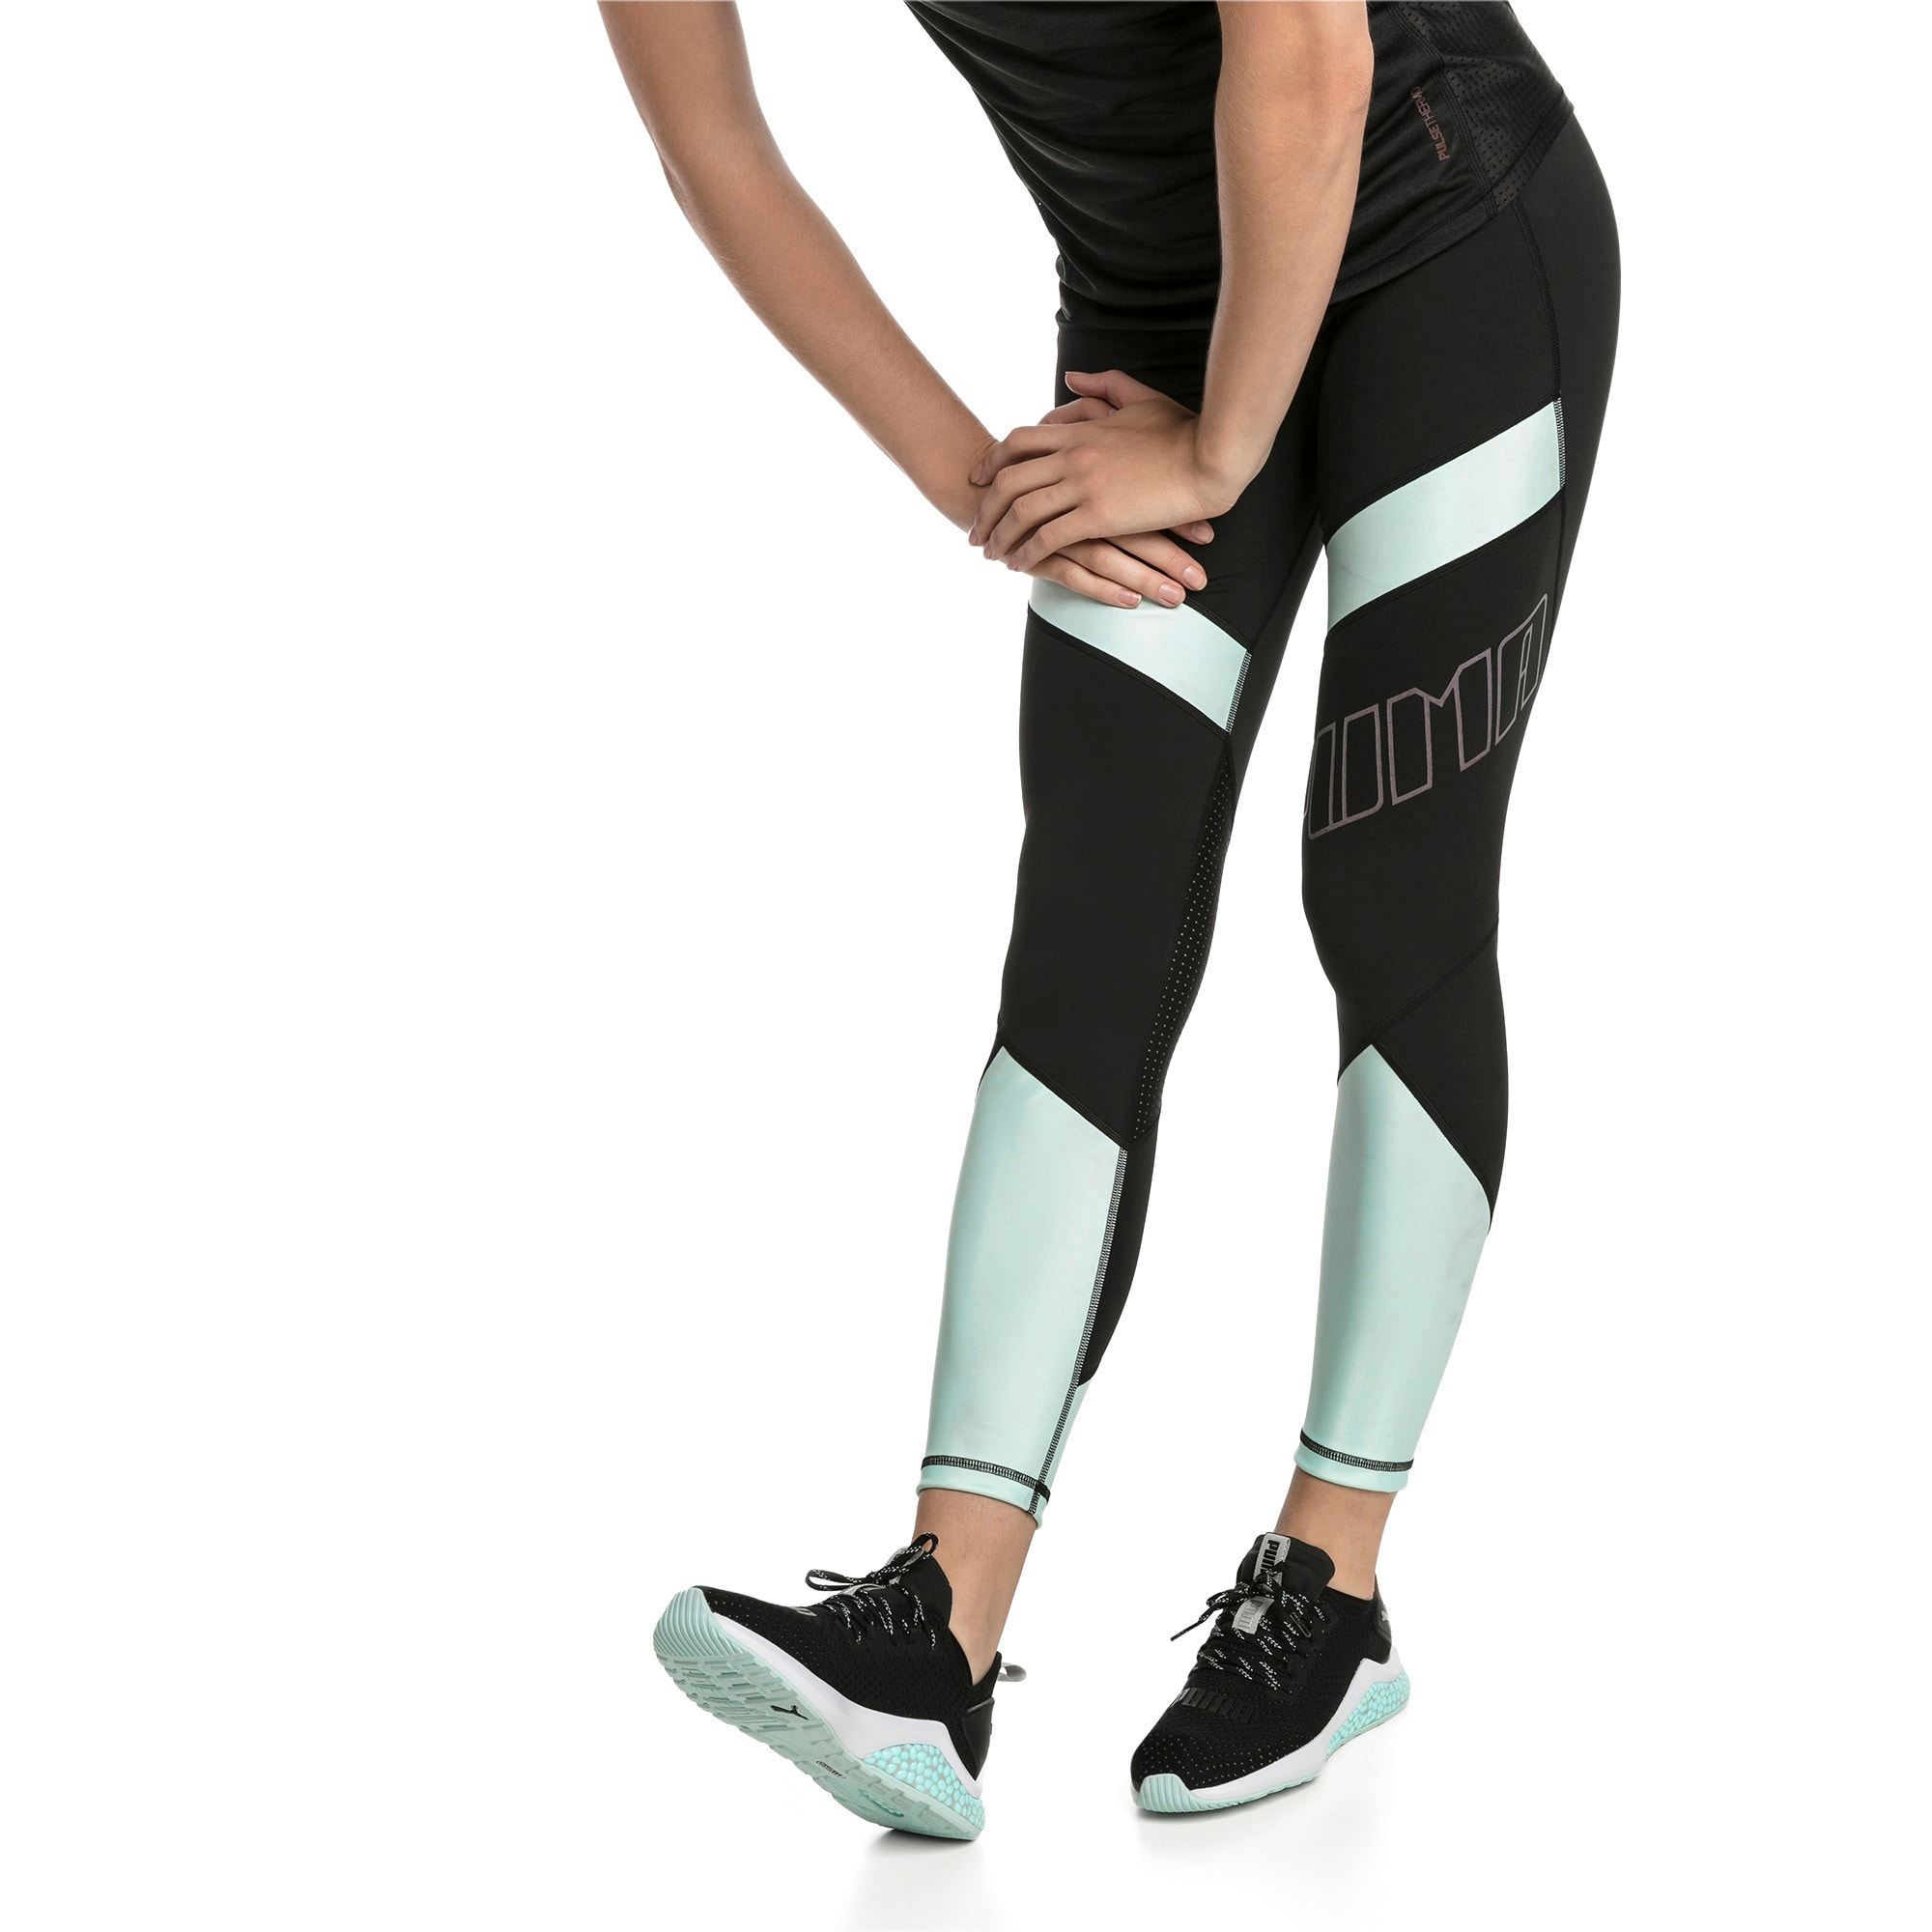 Thumbnail 1 of Elite Speed Women's Leggings, Puma Black-Fair Aqua, medium